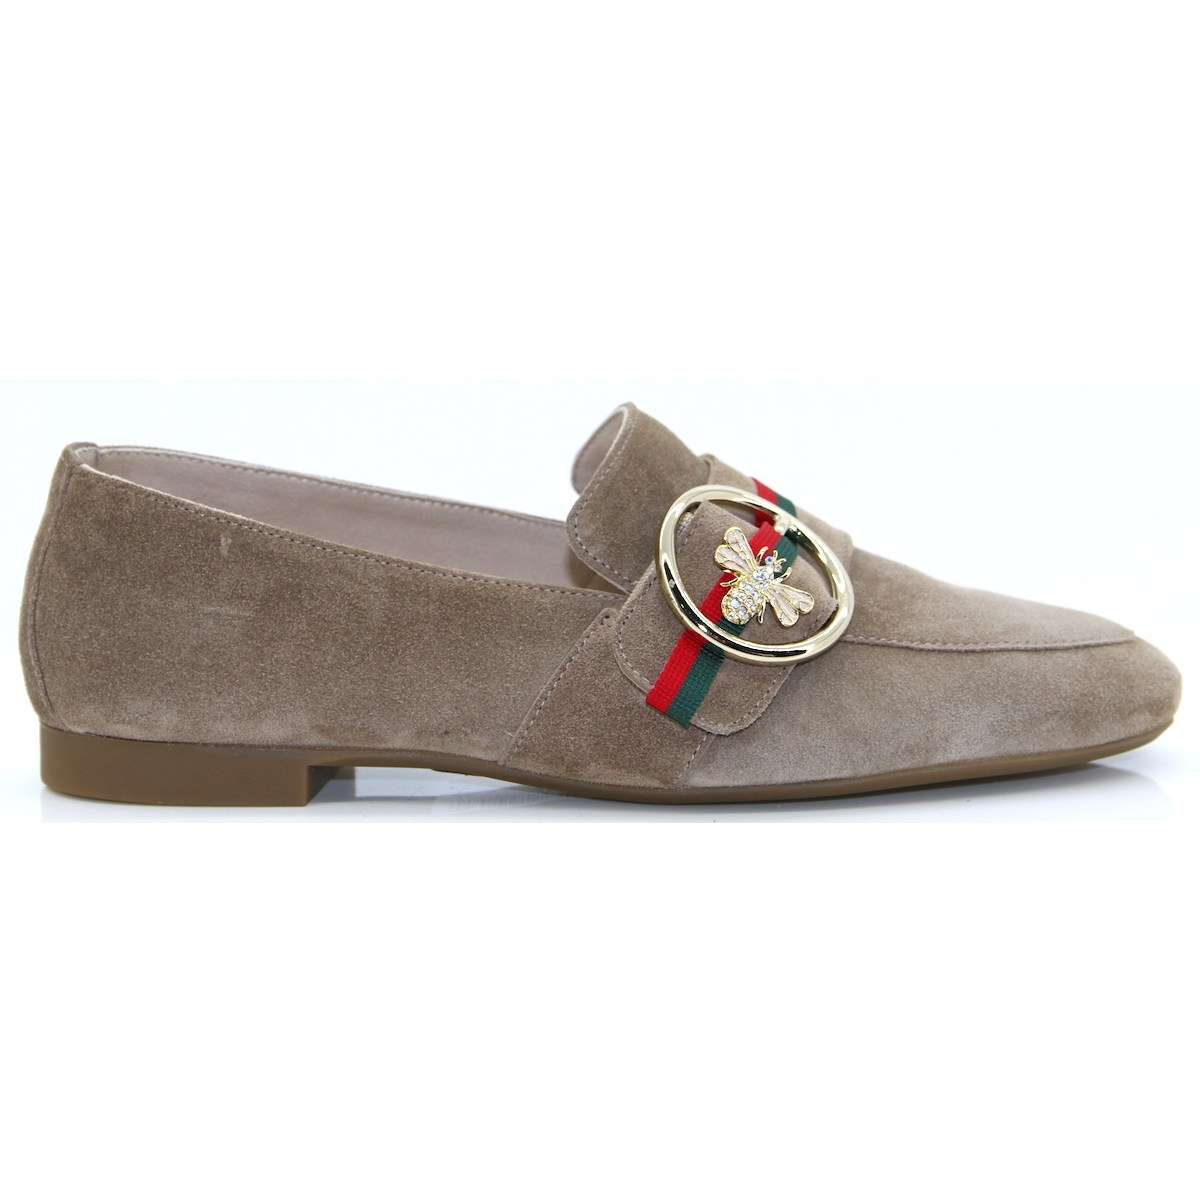 7bb6a6d4436 2472 - PAUL GREEN TAUPE SUEDE LOAFERS - Panache Shoe Company